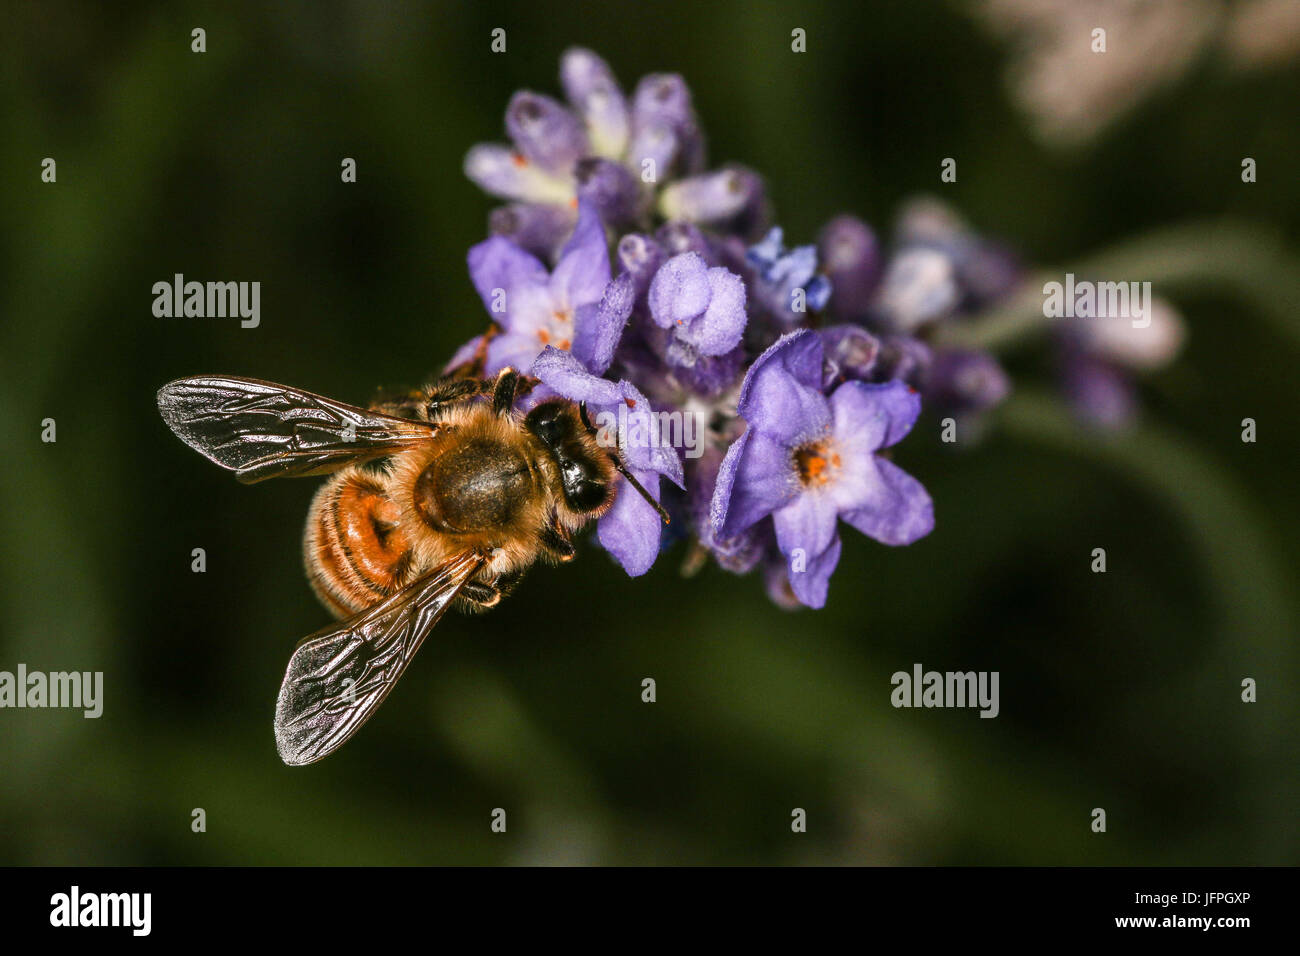 Close up Honey Bee collecting pollen from an open flower on a lavender bush, Shepperton, England, U.K. - Stock Image